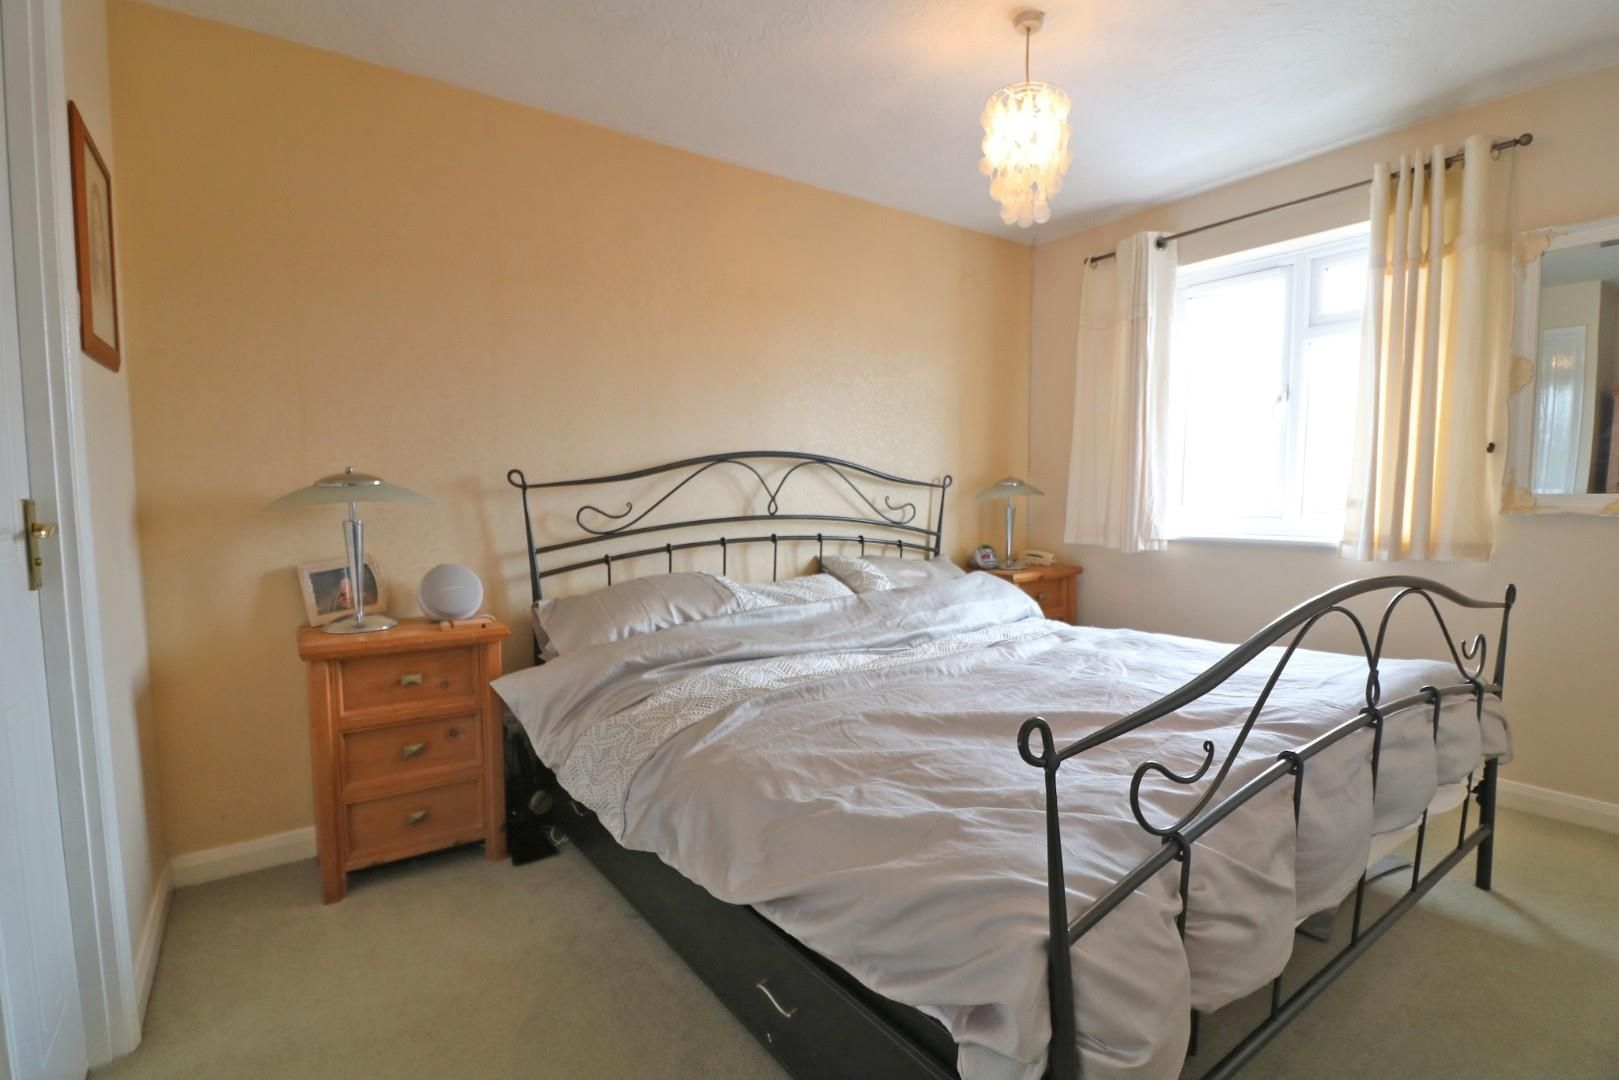 3 bed house for sale in Woodley  - Property Image 7